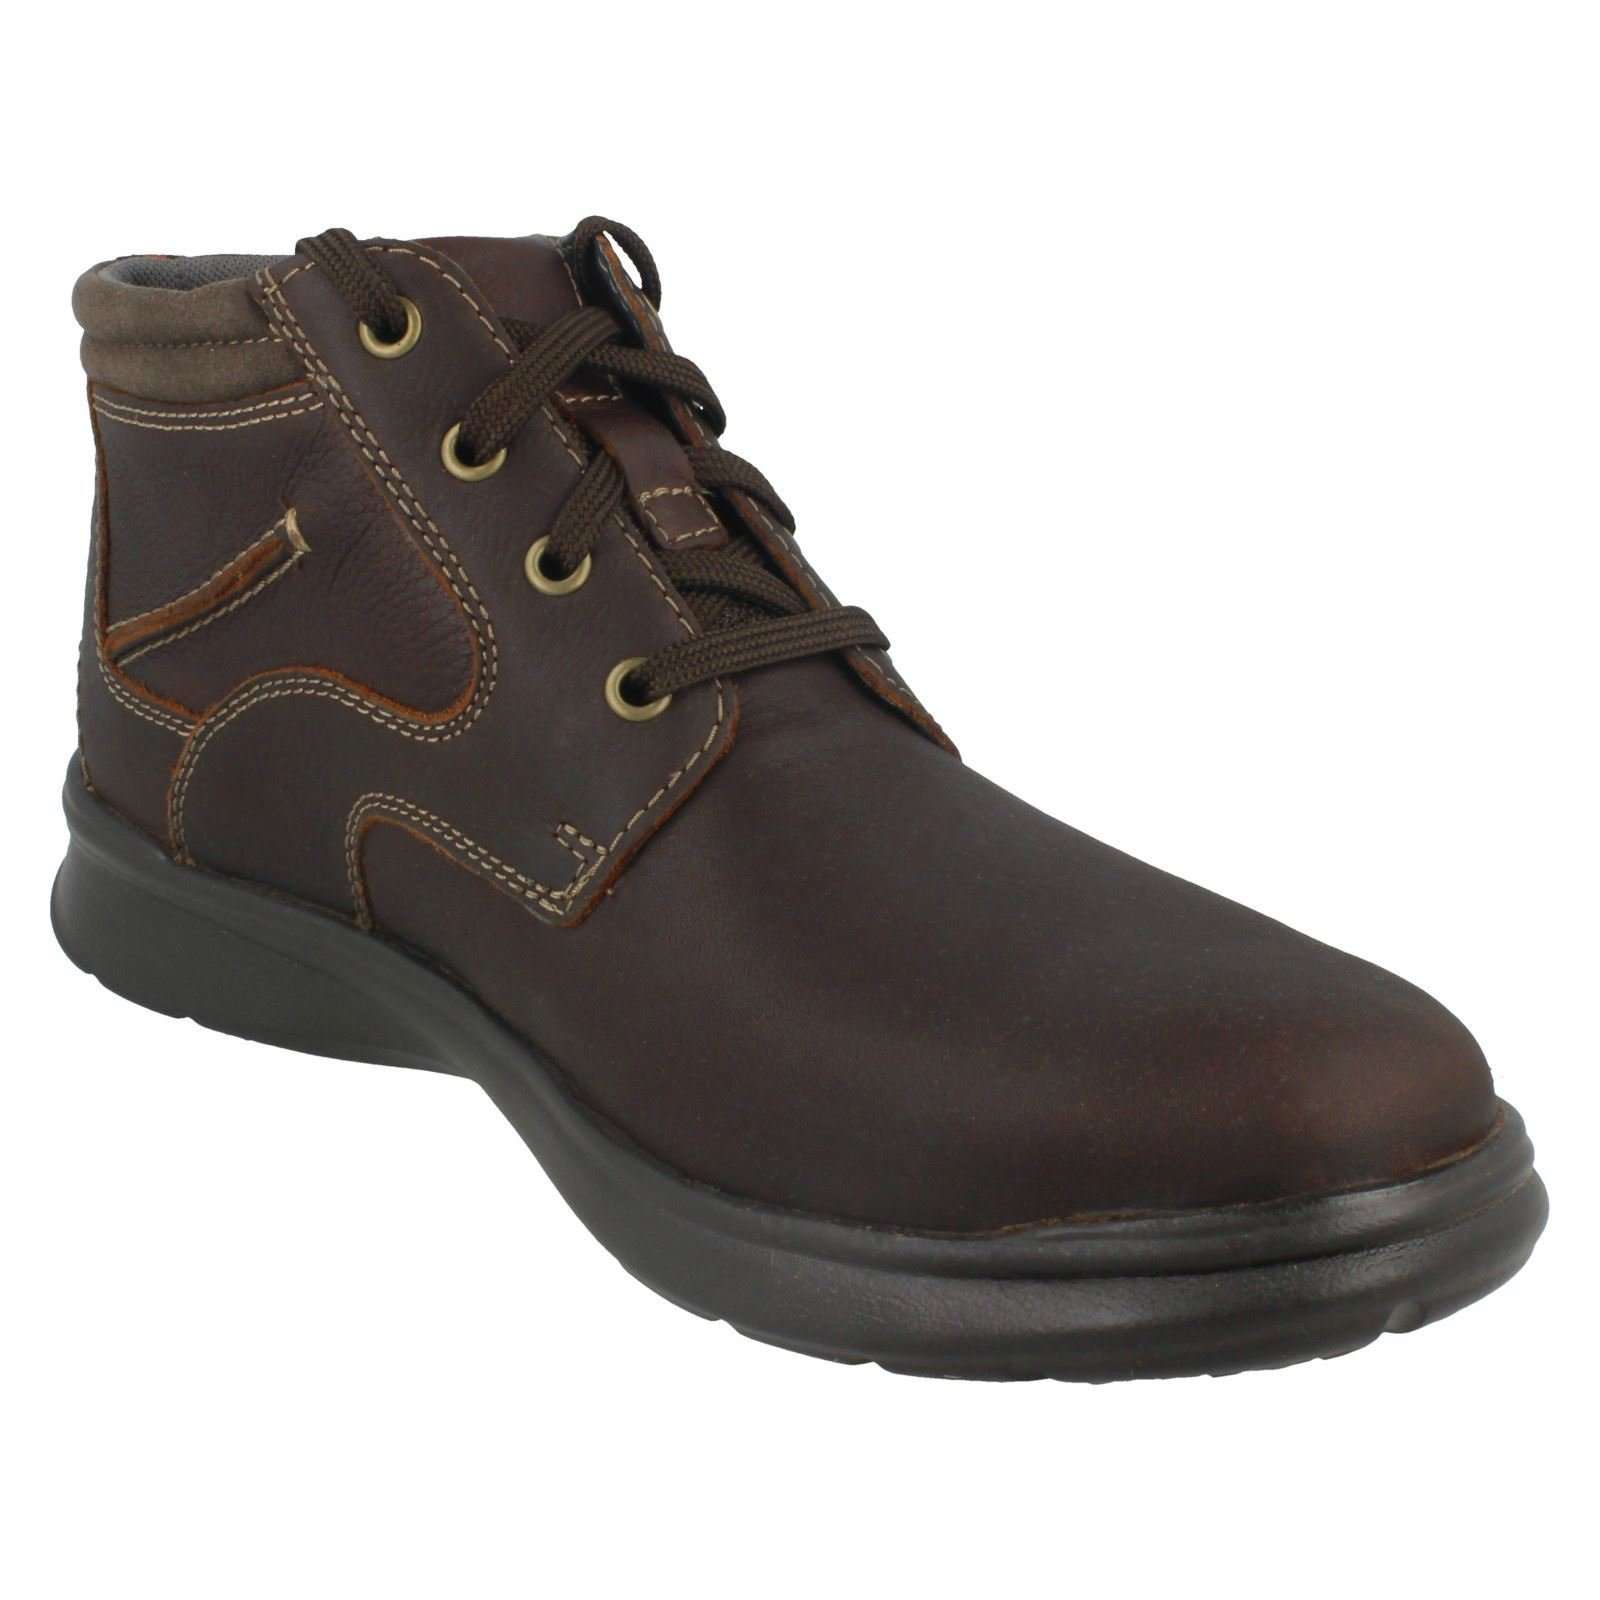 Mens-Clarks-Cotrell-Rise-Casual-Lace-Up-Ankle-Boots thumbnail 17